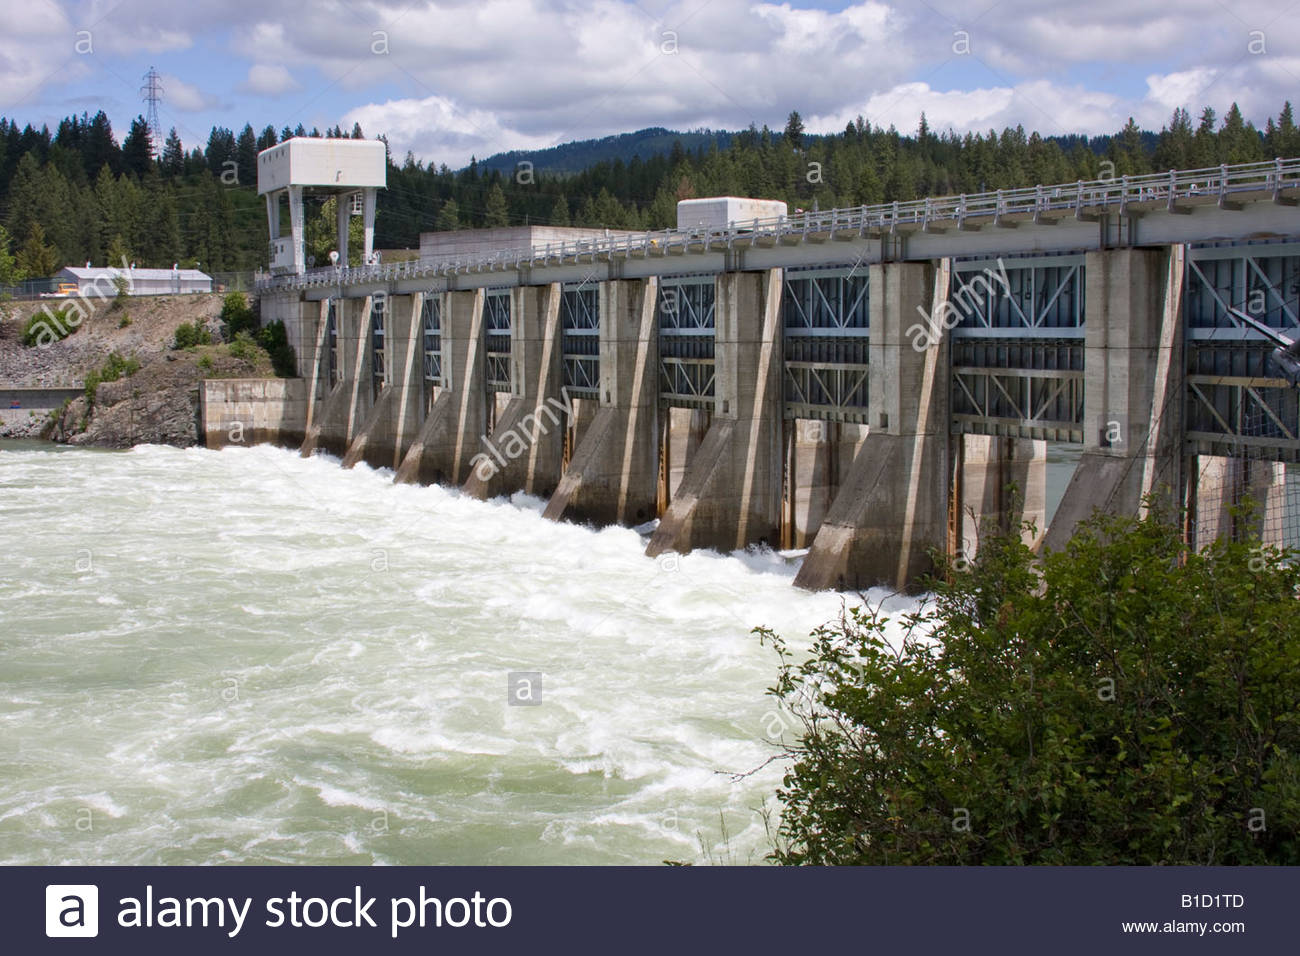 Water churning below the Albeni Falls Dam on the Pend Oreille River in North Idaho - Stock Image